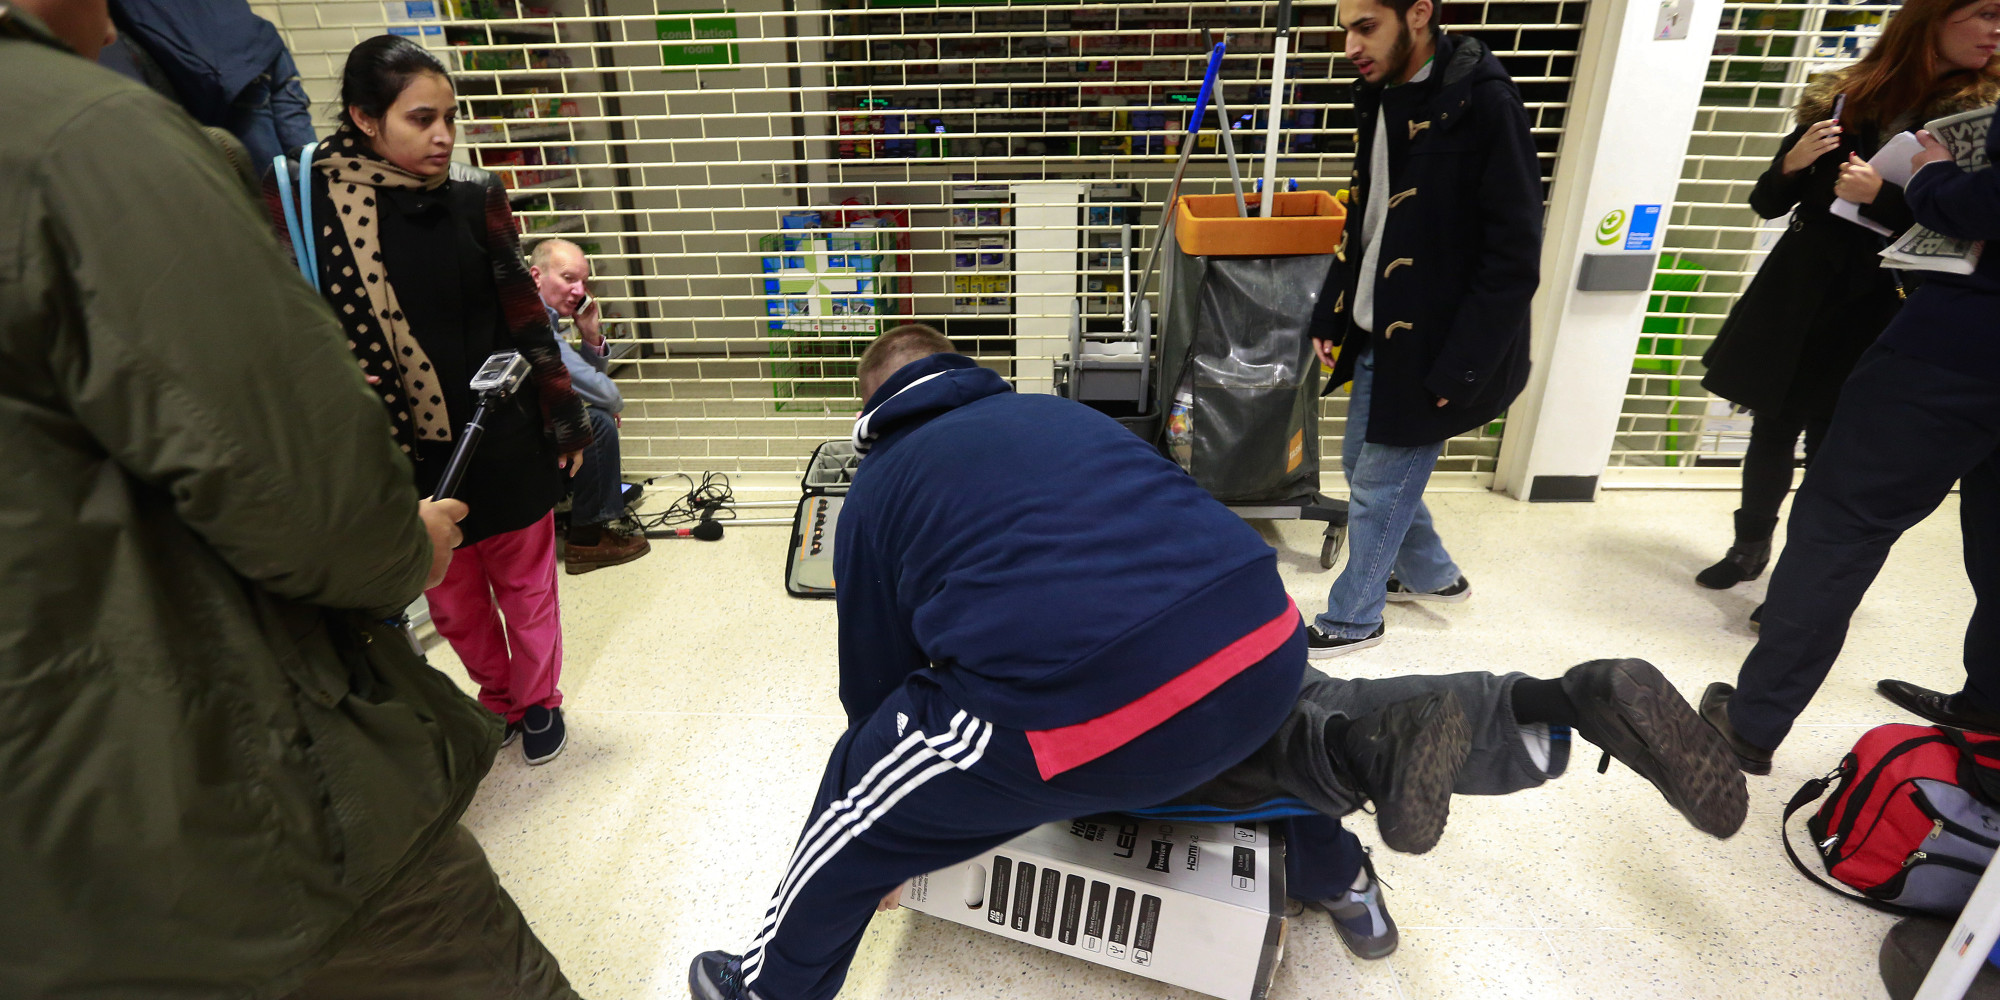 Customers fall to the floor as they grapple for an LED television during a Black Friday discount sale at an Asda supermarket, operated by Wal-Mart Stores Inc., in the Wembley district of London, U.K., on Friday, Nov. 28, 2014. Black Friday has caught on in the U.K. and worldwide over the last few years as the rise of the Internet has made the event a global phenomenon, with customers always being just one click away from the deals offered by U.S. retailers online. Photographer: Simon Dawson/Bloomberg via Getty Images